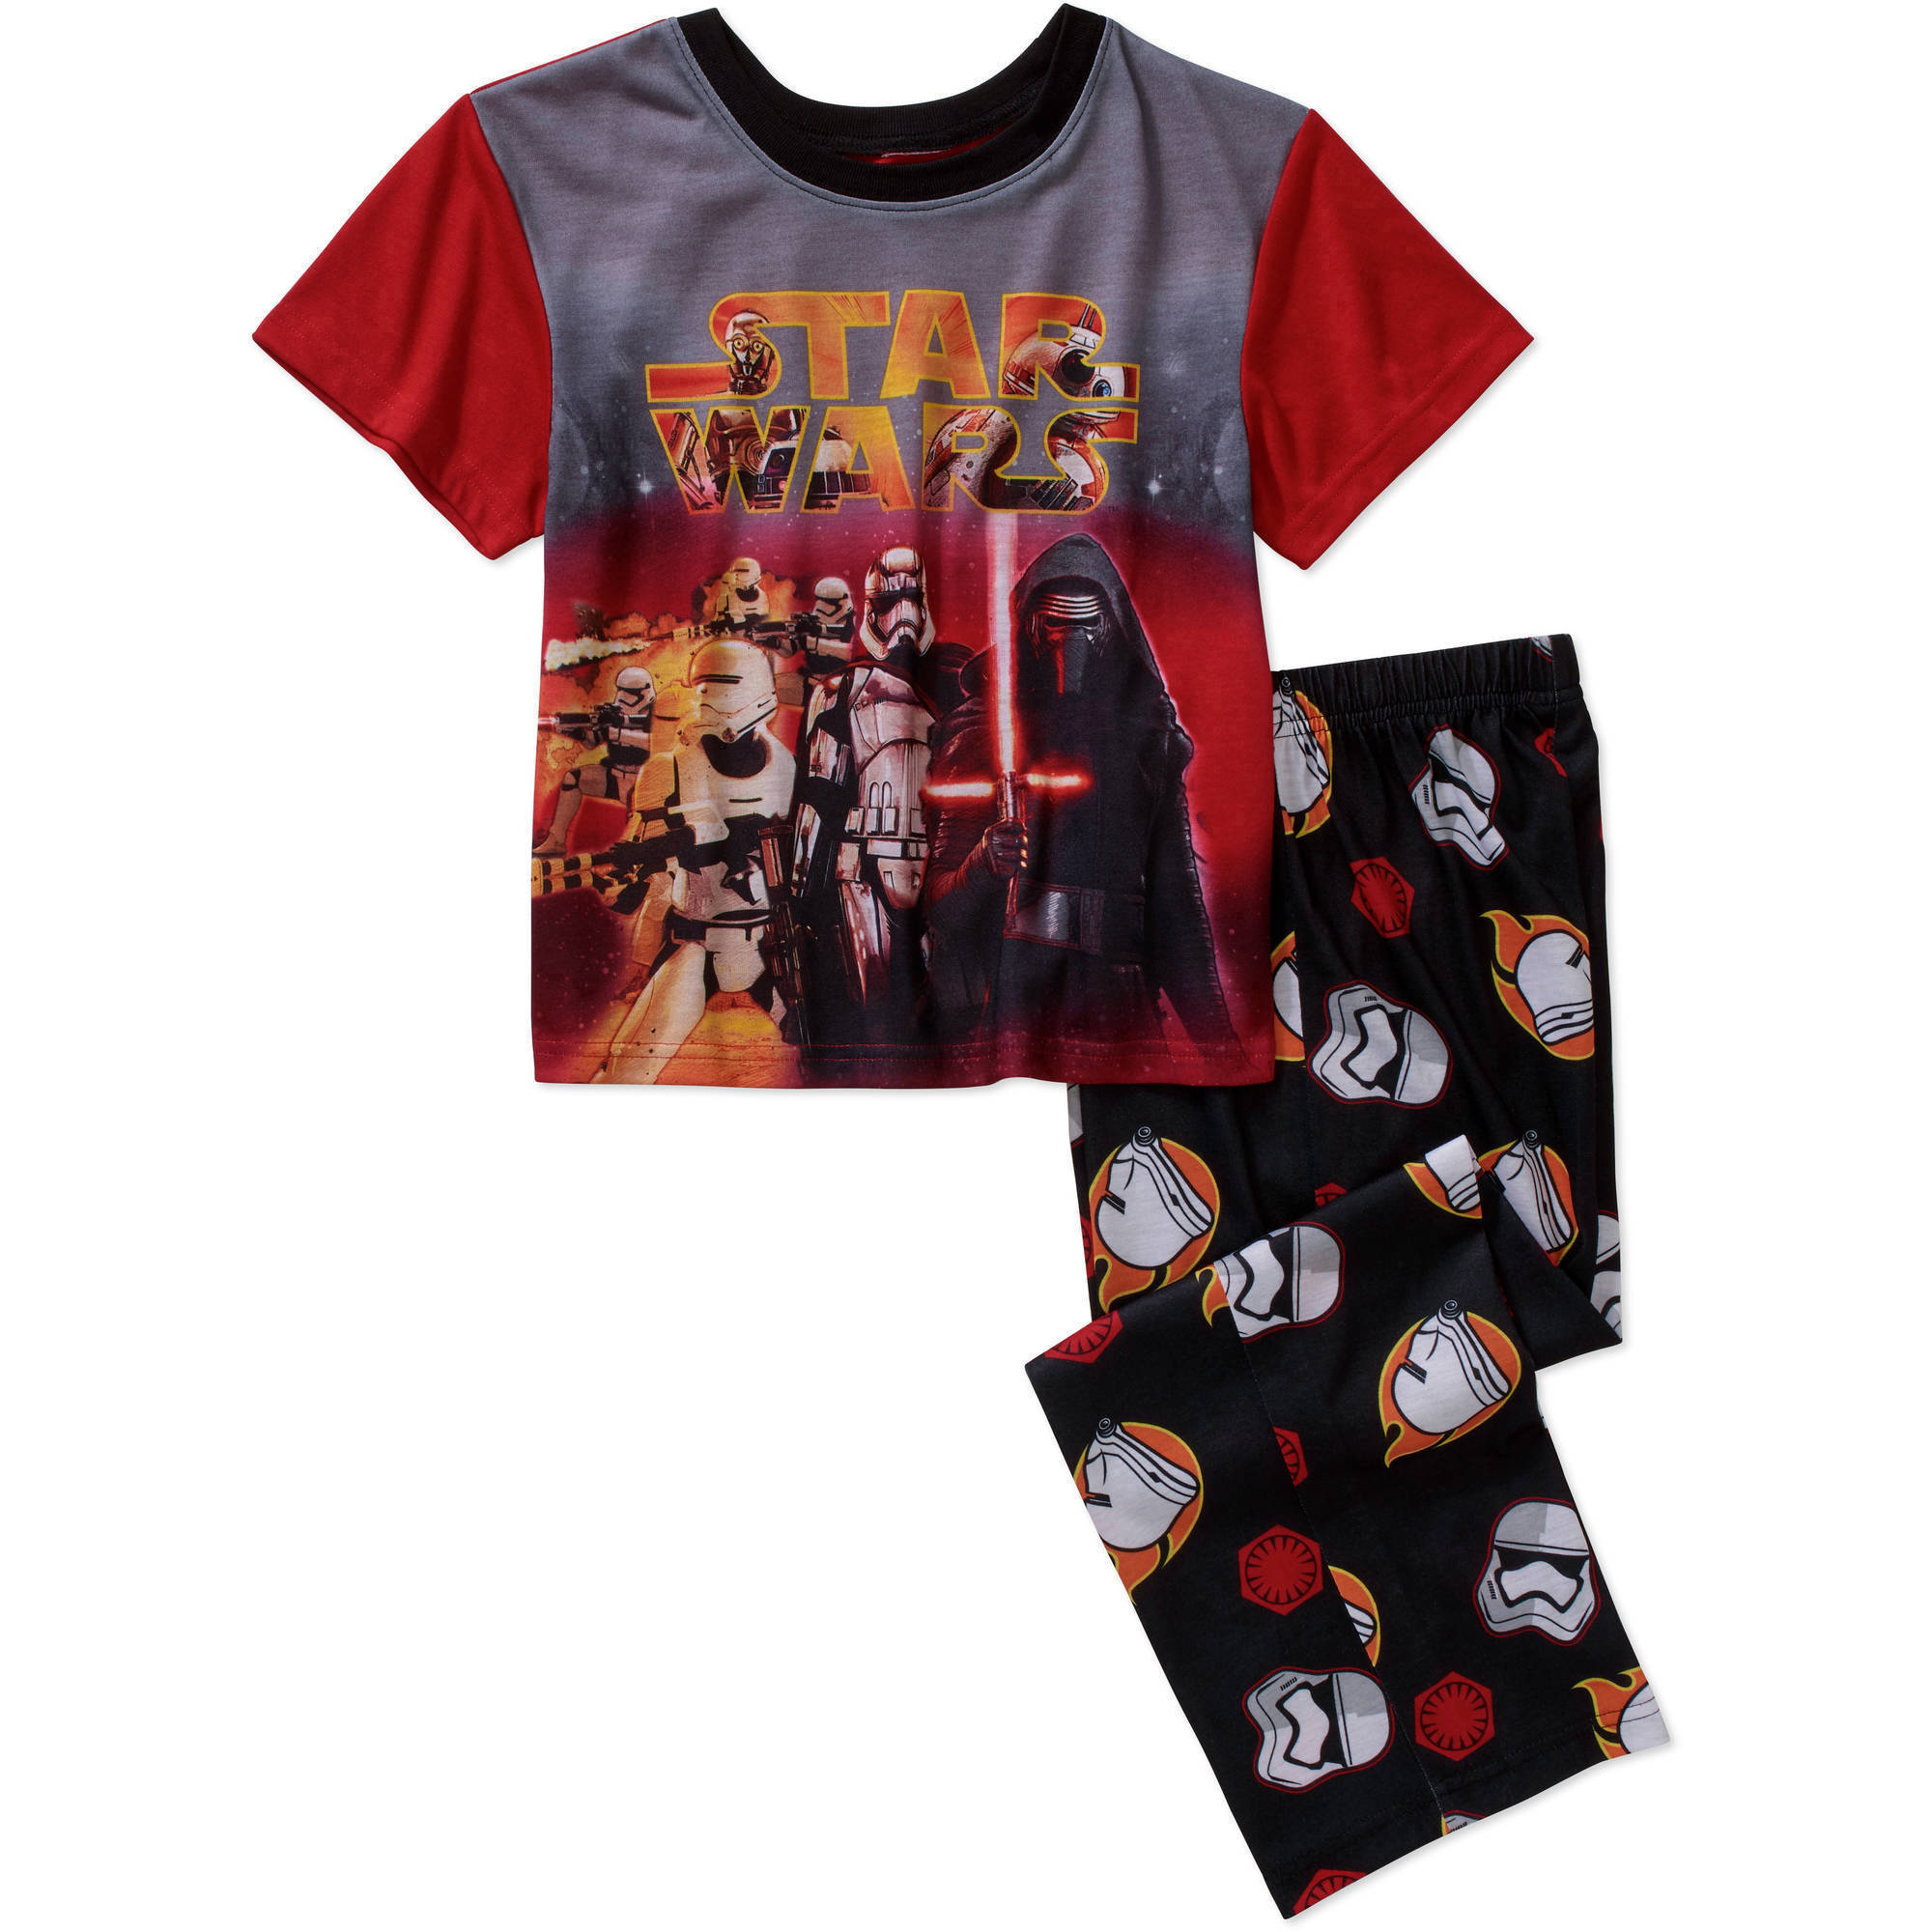 Star Wars Boys' Licensed Polyester Pajama Sleepwear Set